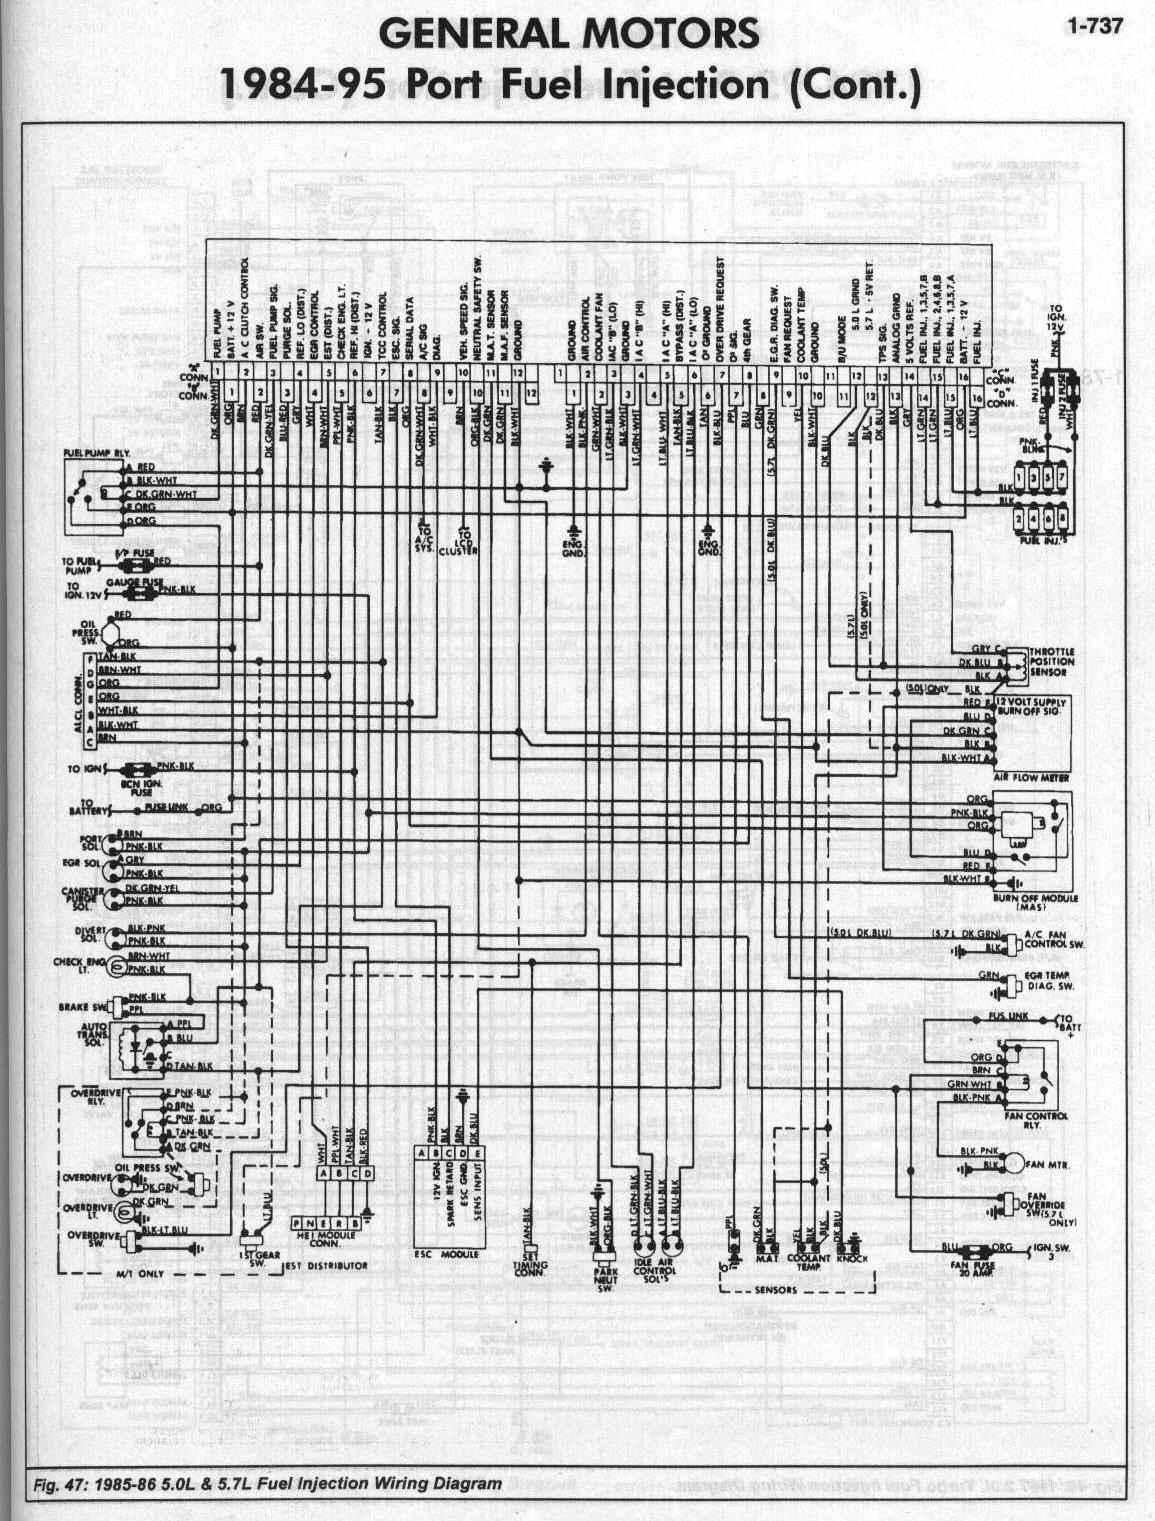 1984 Camaro Z28 Fuse Diagram Content Resource Of Wiring My 85 And Eprom Project Rh Eecis Udel Edu Box Location